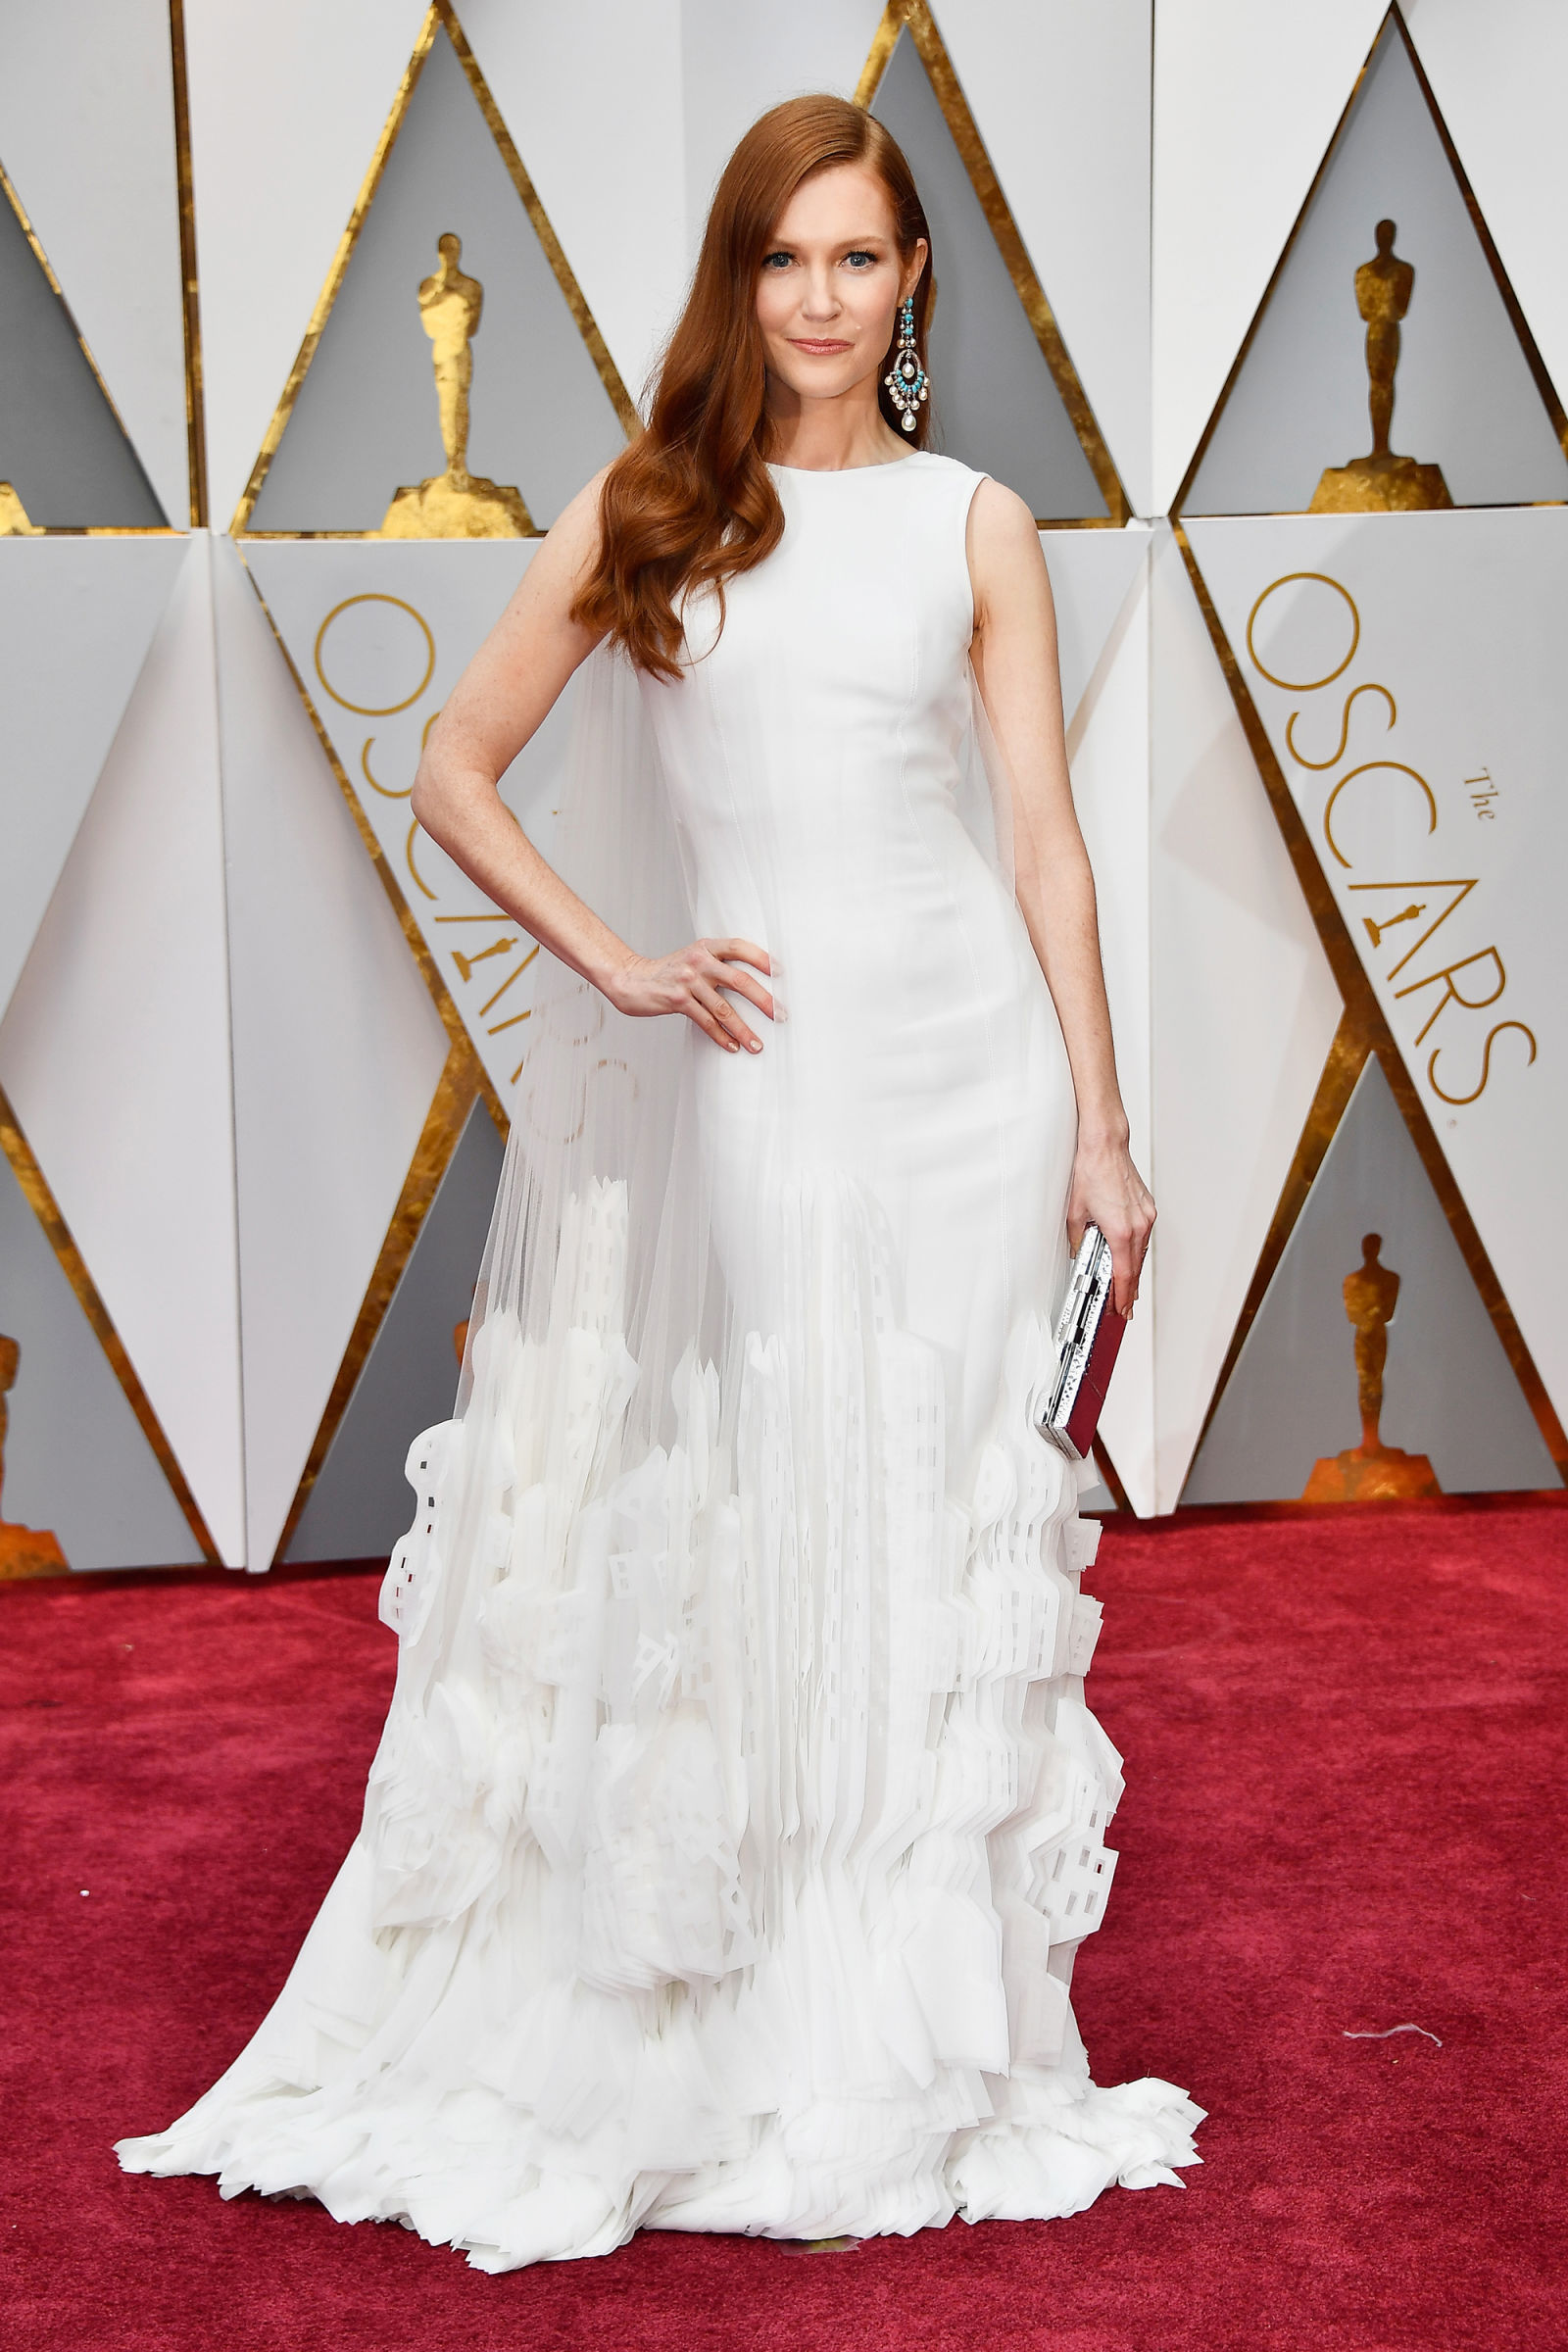 DARBY STANCHFIELD Hairstyles 2017 Oscars